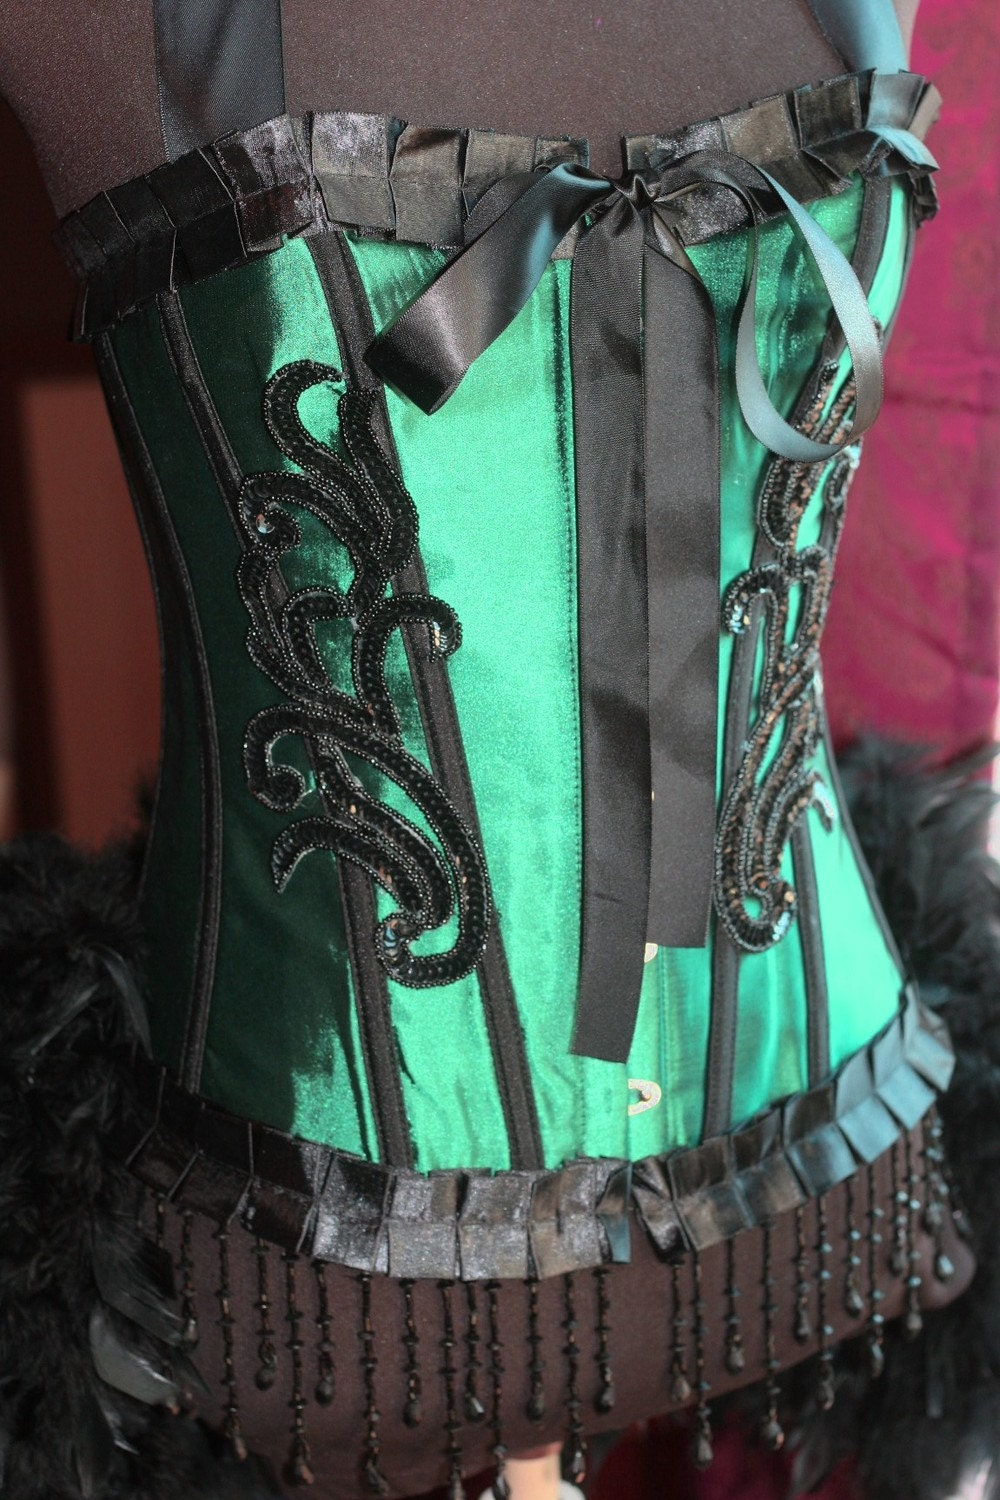 & ABSINTHE Circus Burlesque Corset Costumes Black outfit Green Fairy